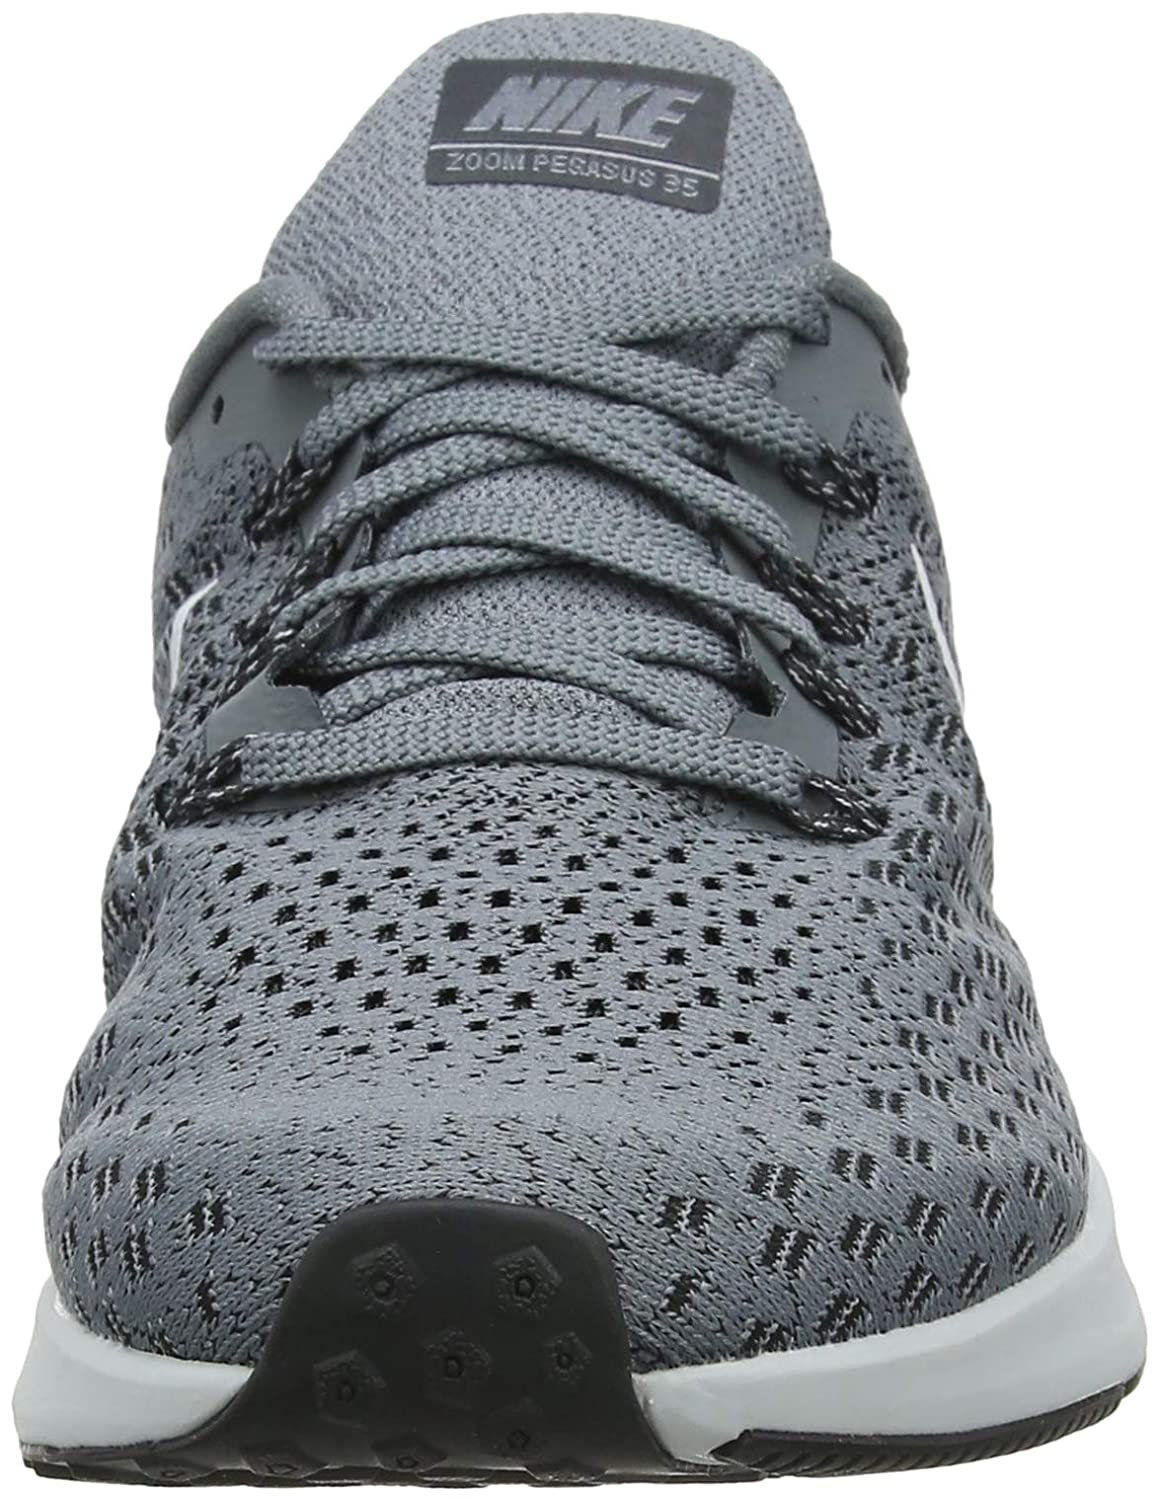 Amazon.com | NIKE Mens Air Zoom Pegasus 35 Running Shoe, Cool Grey/Pure Platinum-Anthracite, 10.5 | Road Running